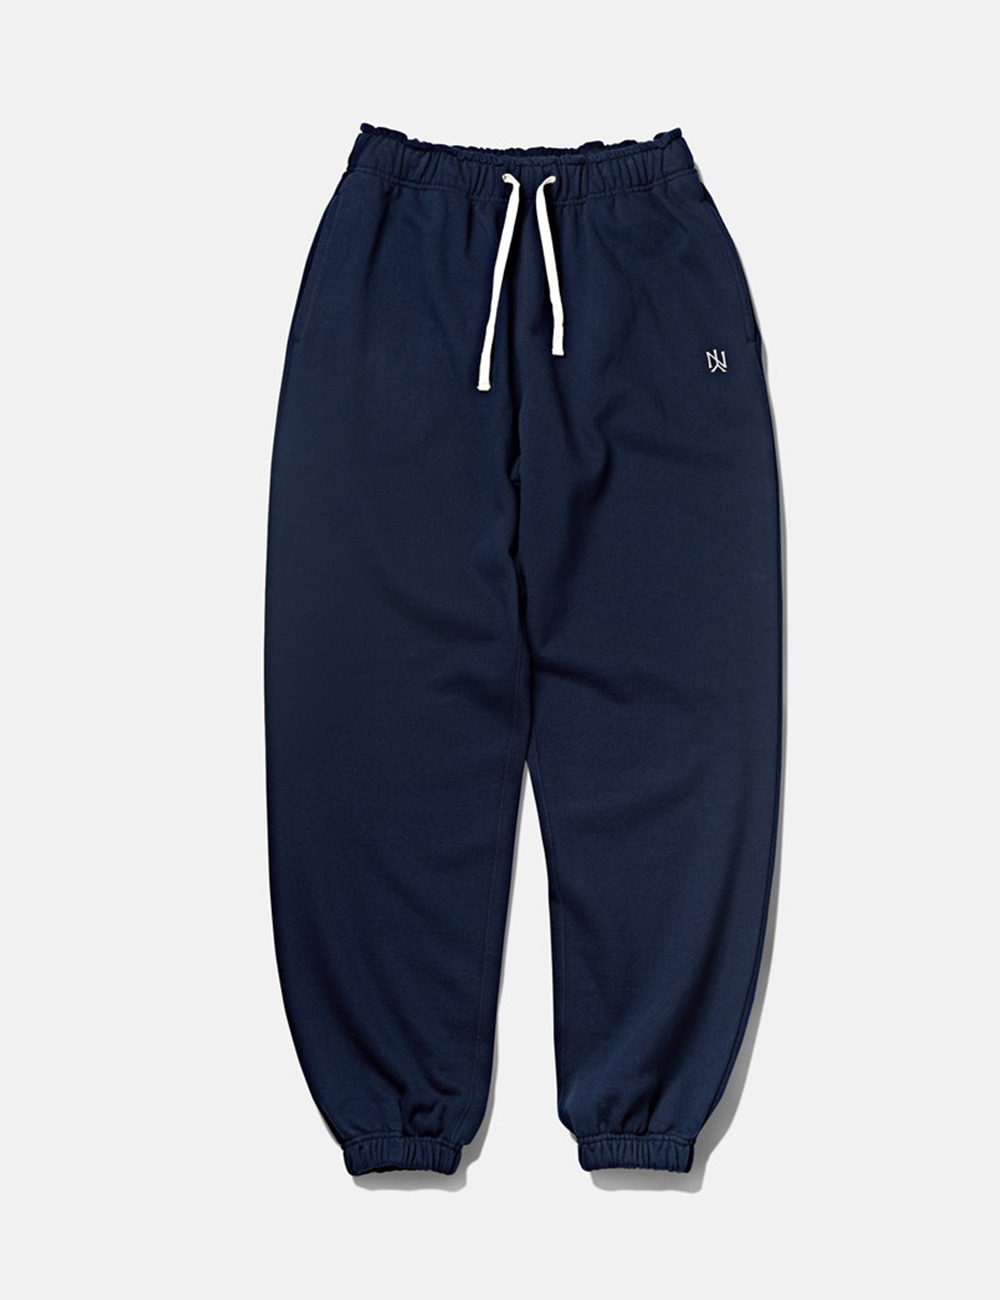 [DEUTERO] DTR1950 90s Y.N. Sweat Pants Navy